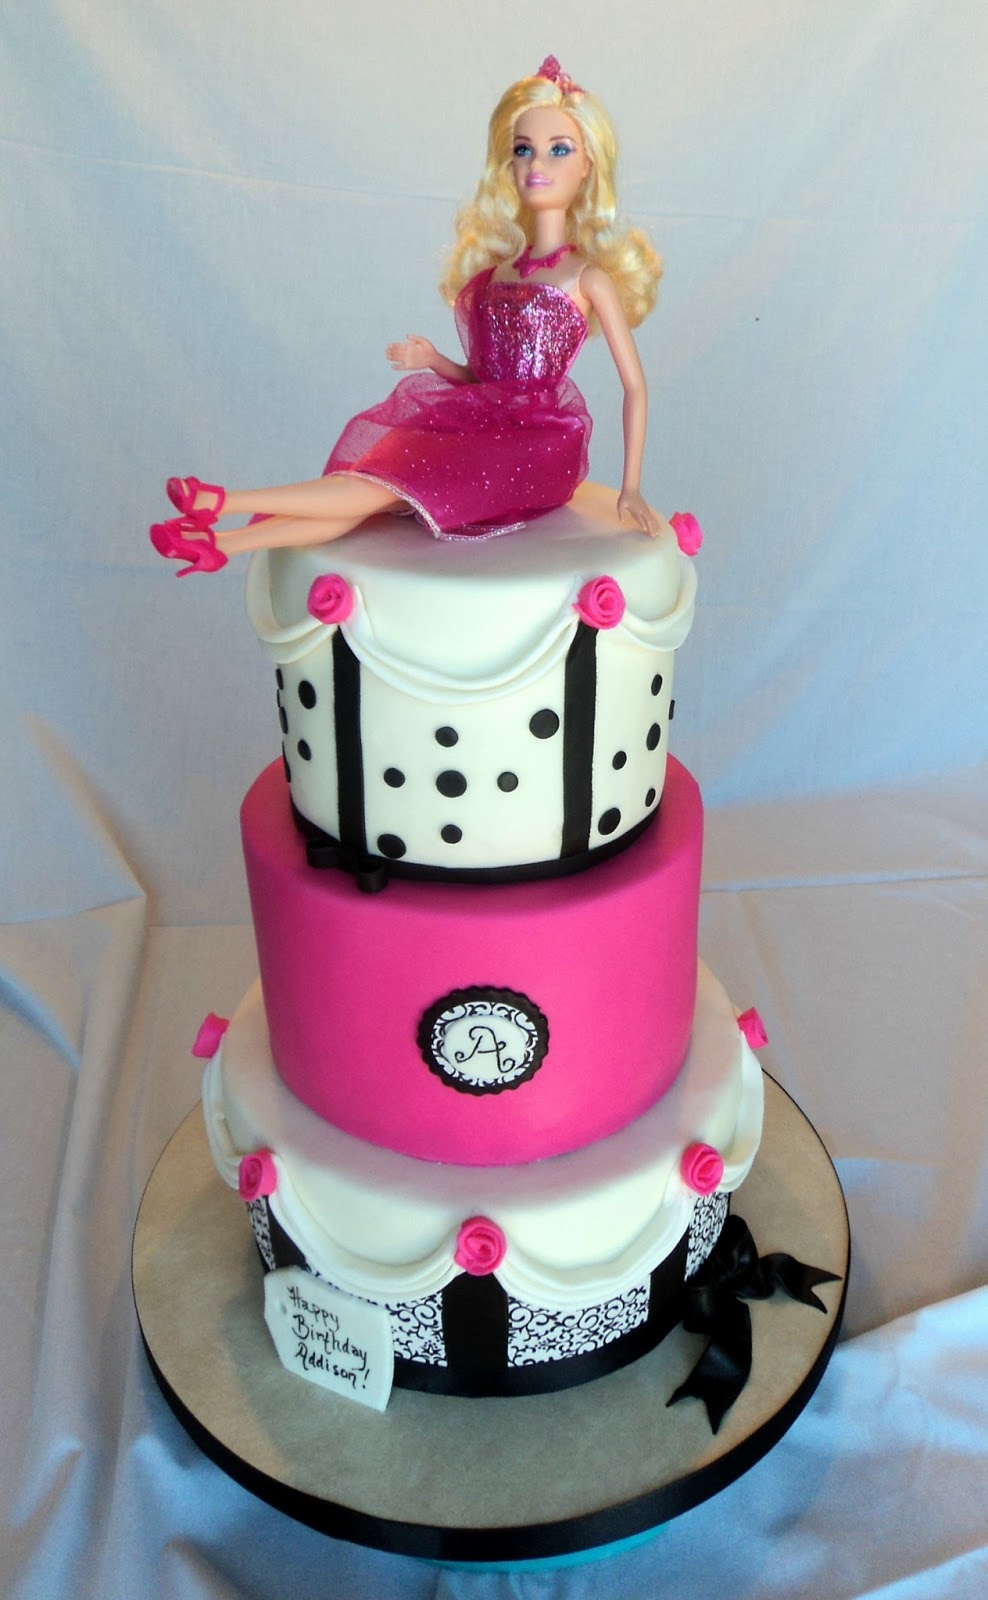 Delectable Cakes Hot Pink Black And White Barbie Birthday Cake